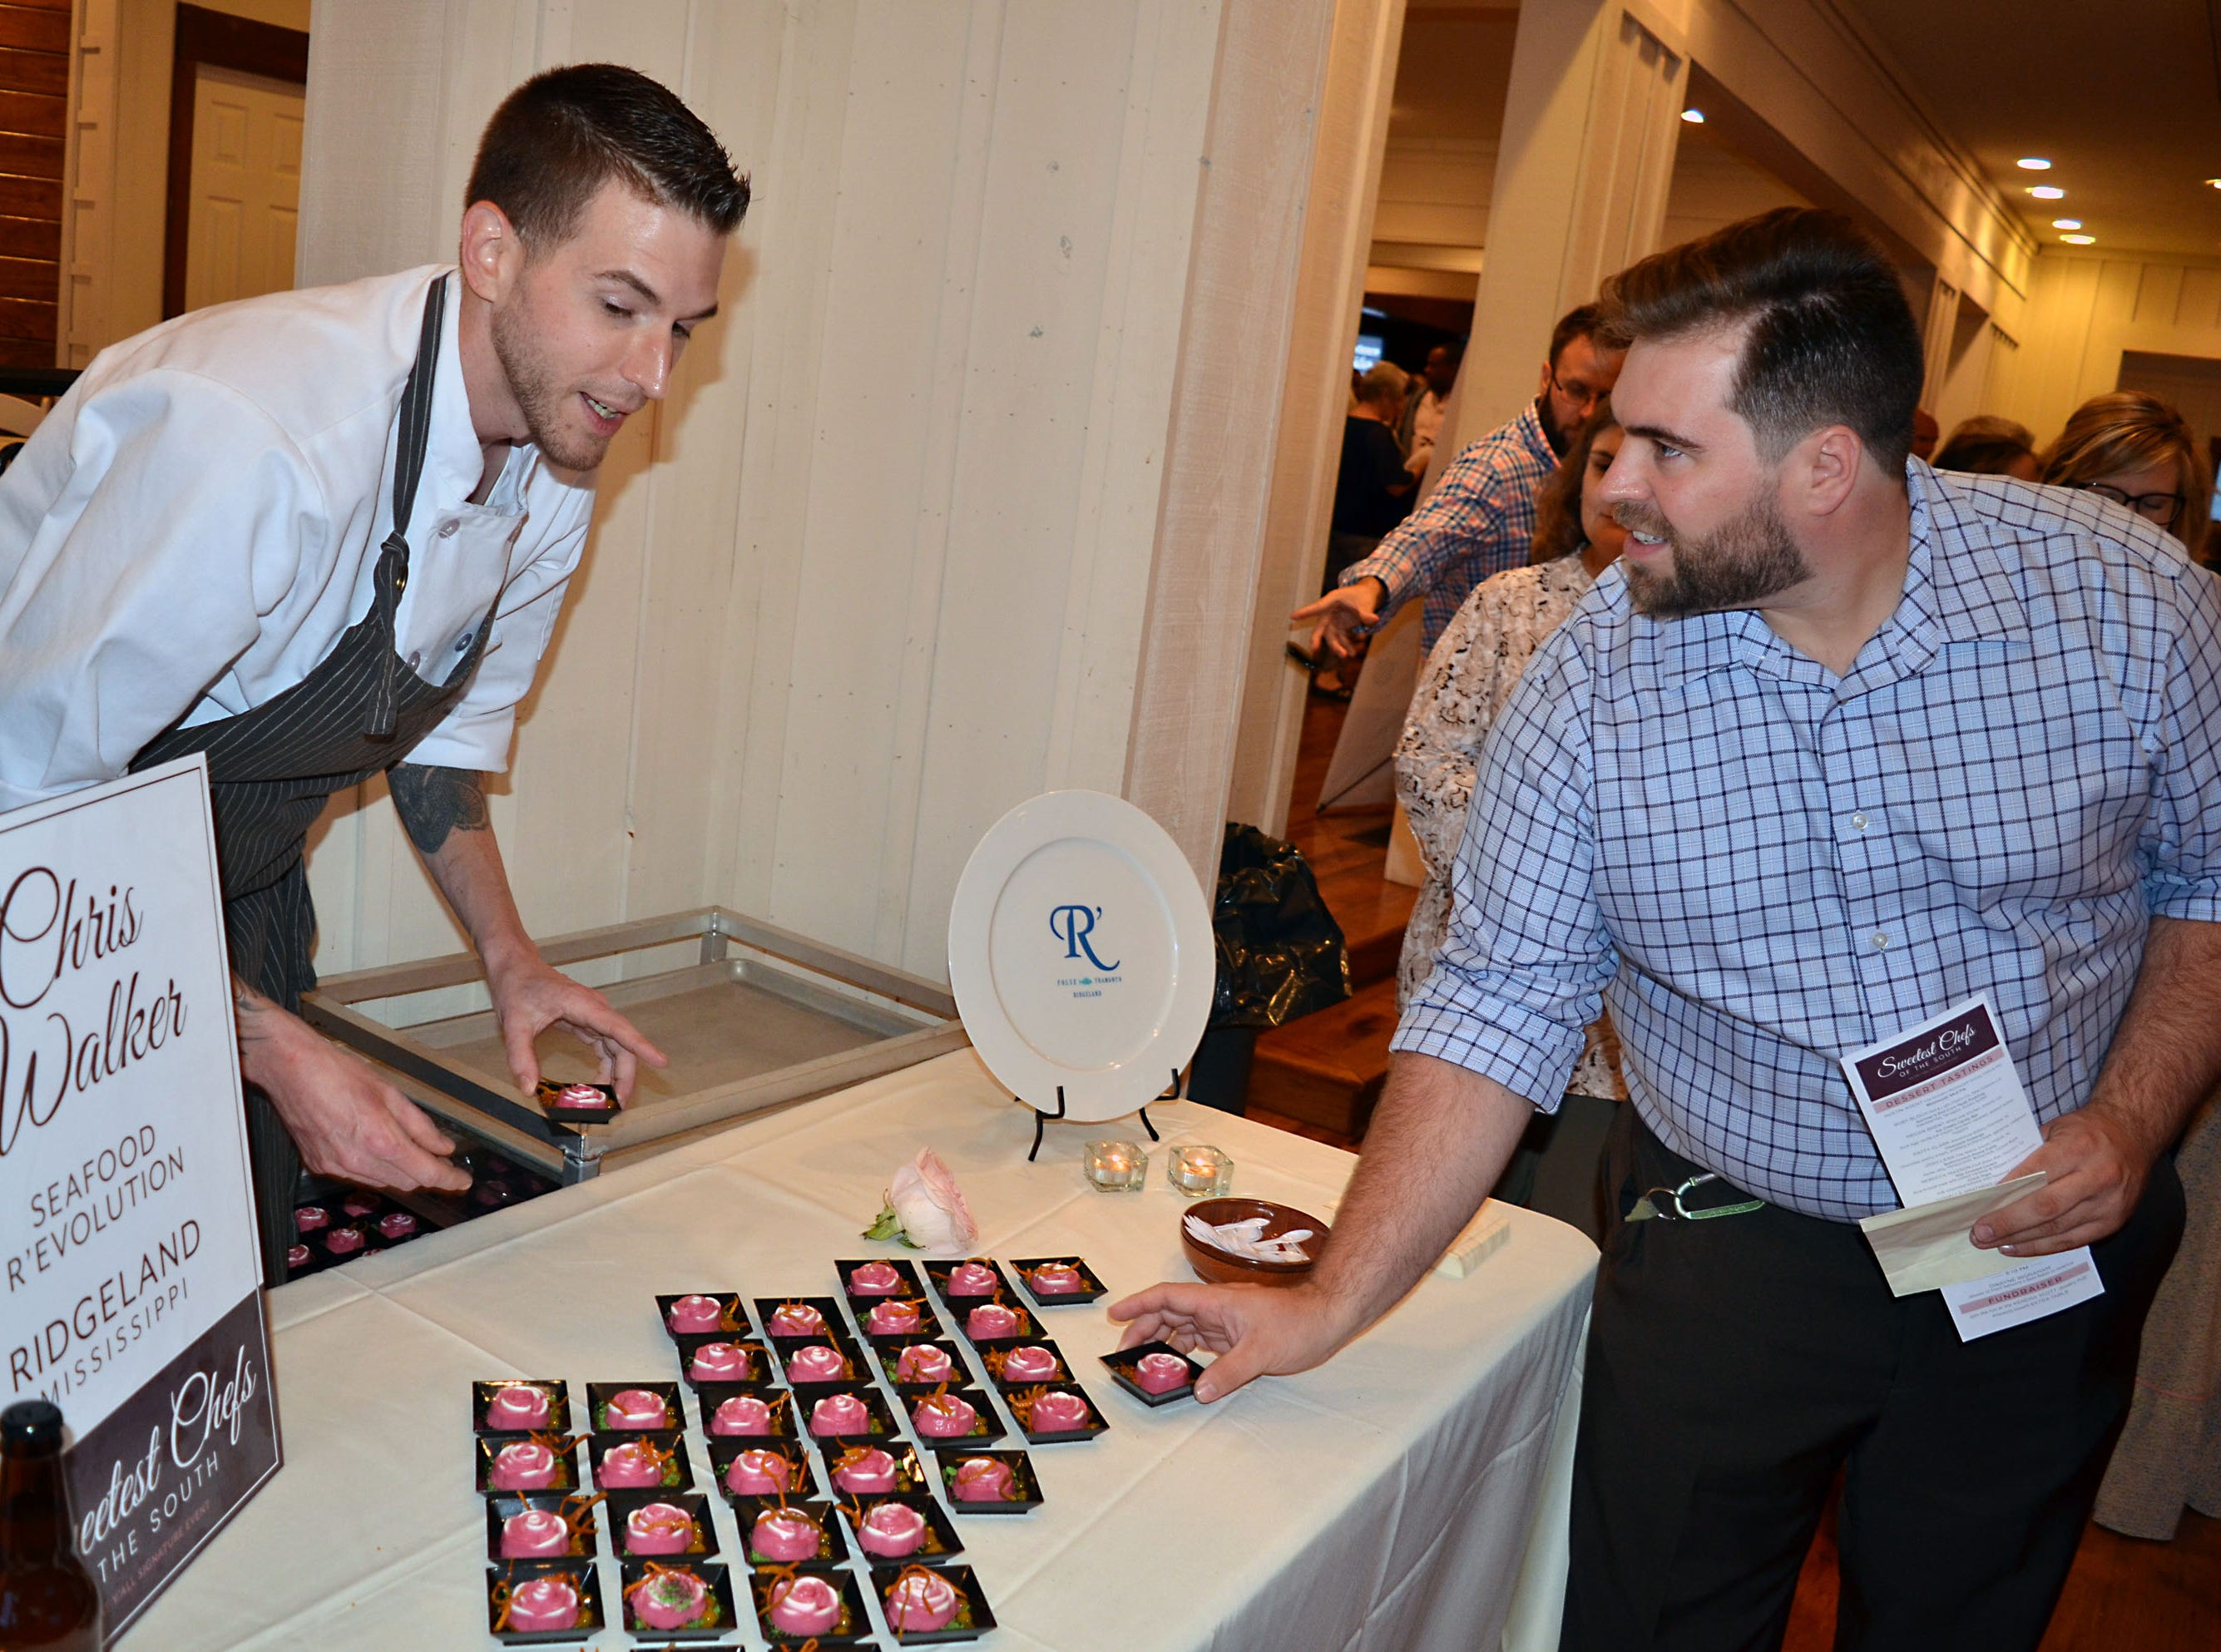 Dylan Brown, right, of Brandon, talks with Seafood Revolution pastry chef, Chris Walker about the hibiscus panna cotta he has prepared for The Sweetest Chefs event.